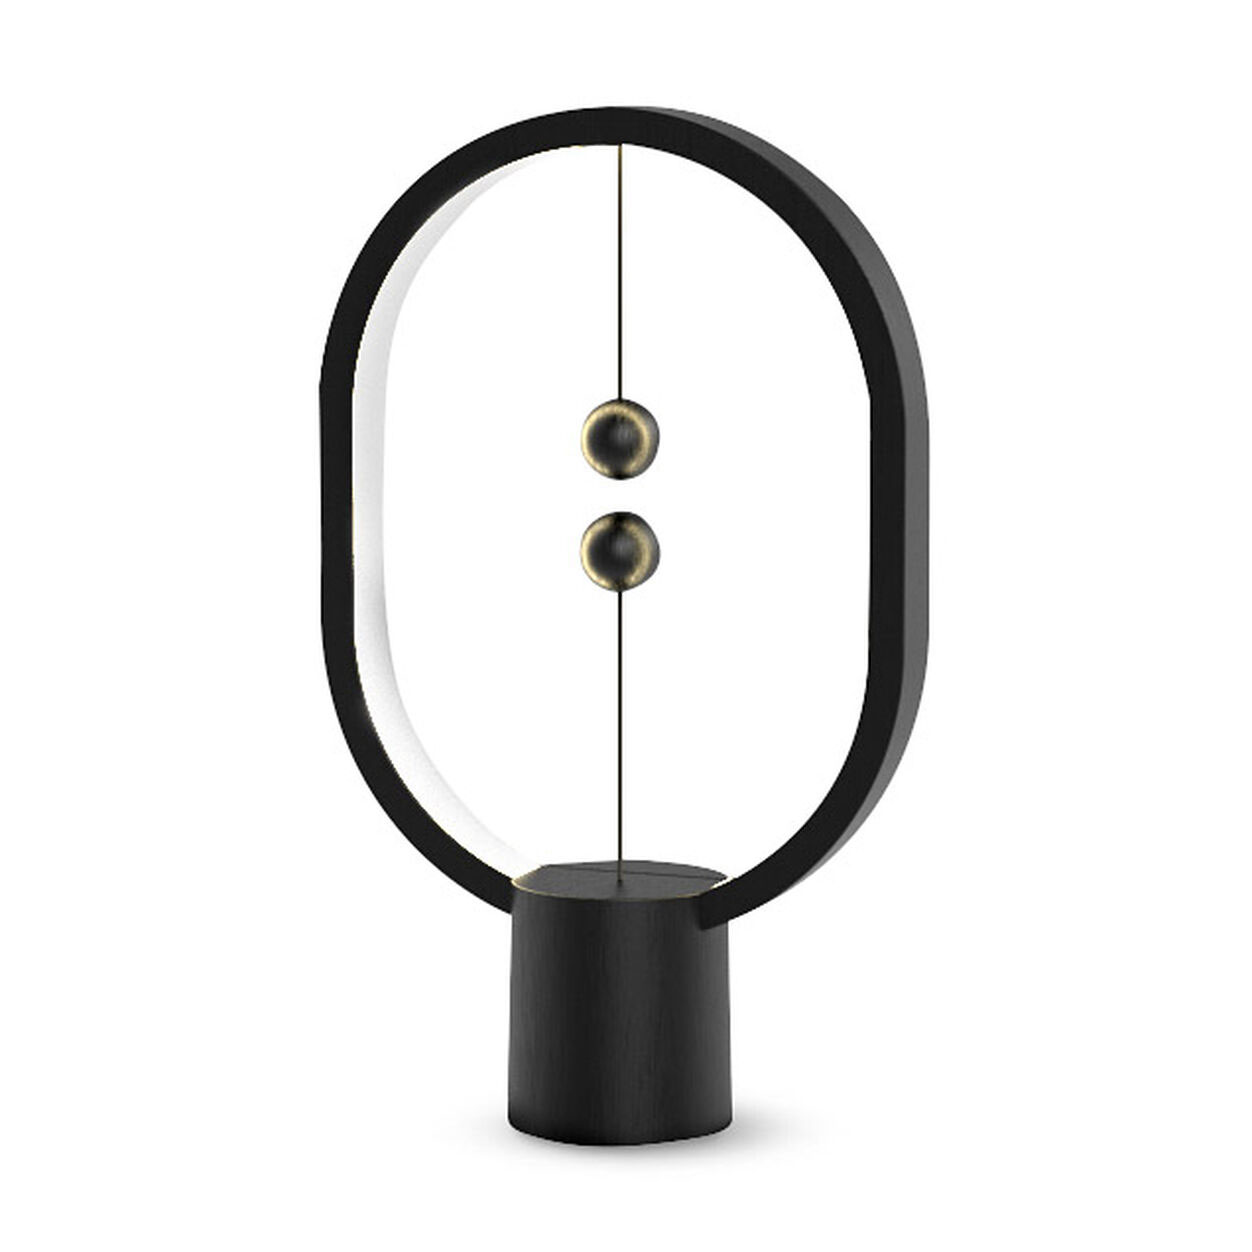 Father's Day gift ideas - Heng Balance Lamp